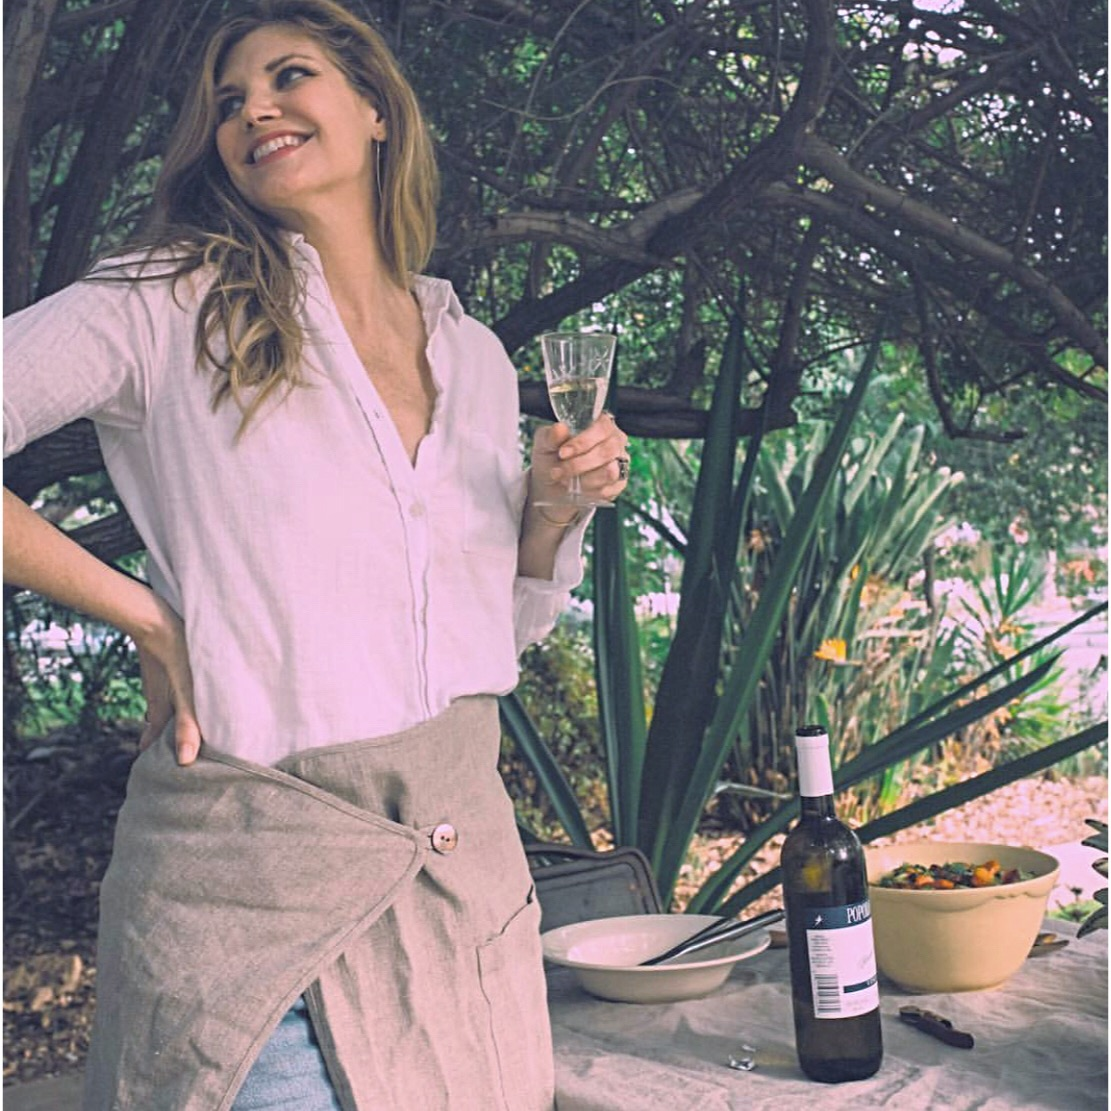 Sommelier Stephanie Schaffer will talk about and pour biodynamic wines after the Tour in the beautiful garden at 1108 Foothill St. from 5 - 7pm.